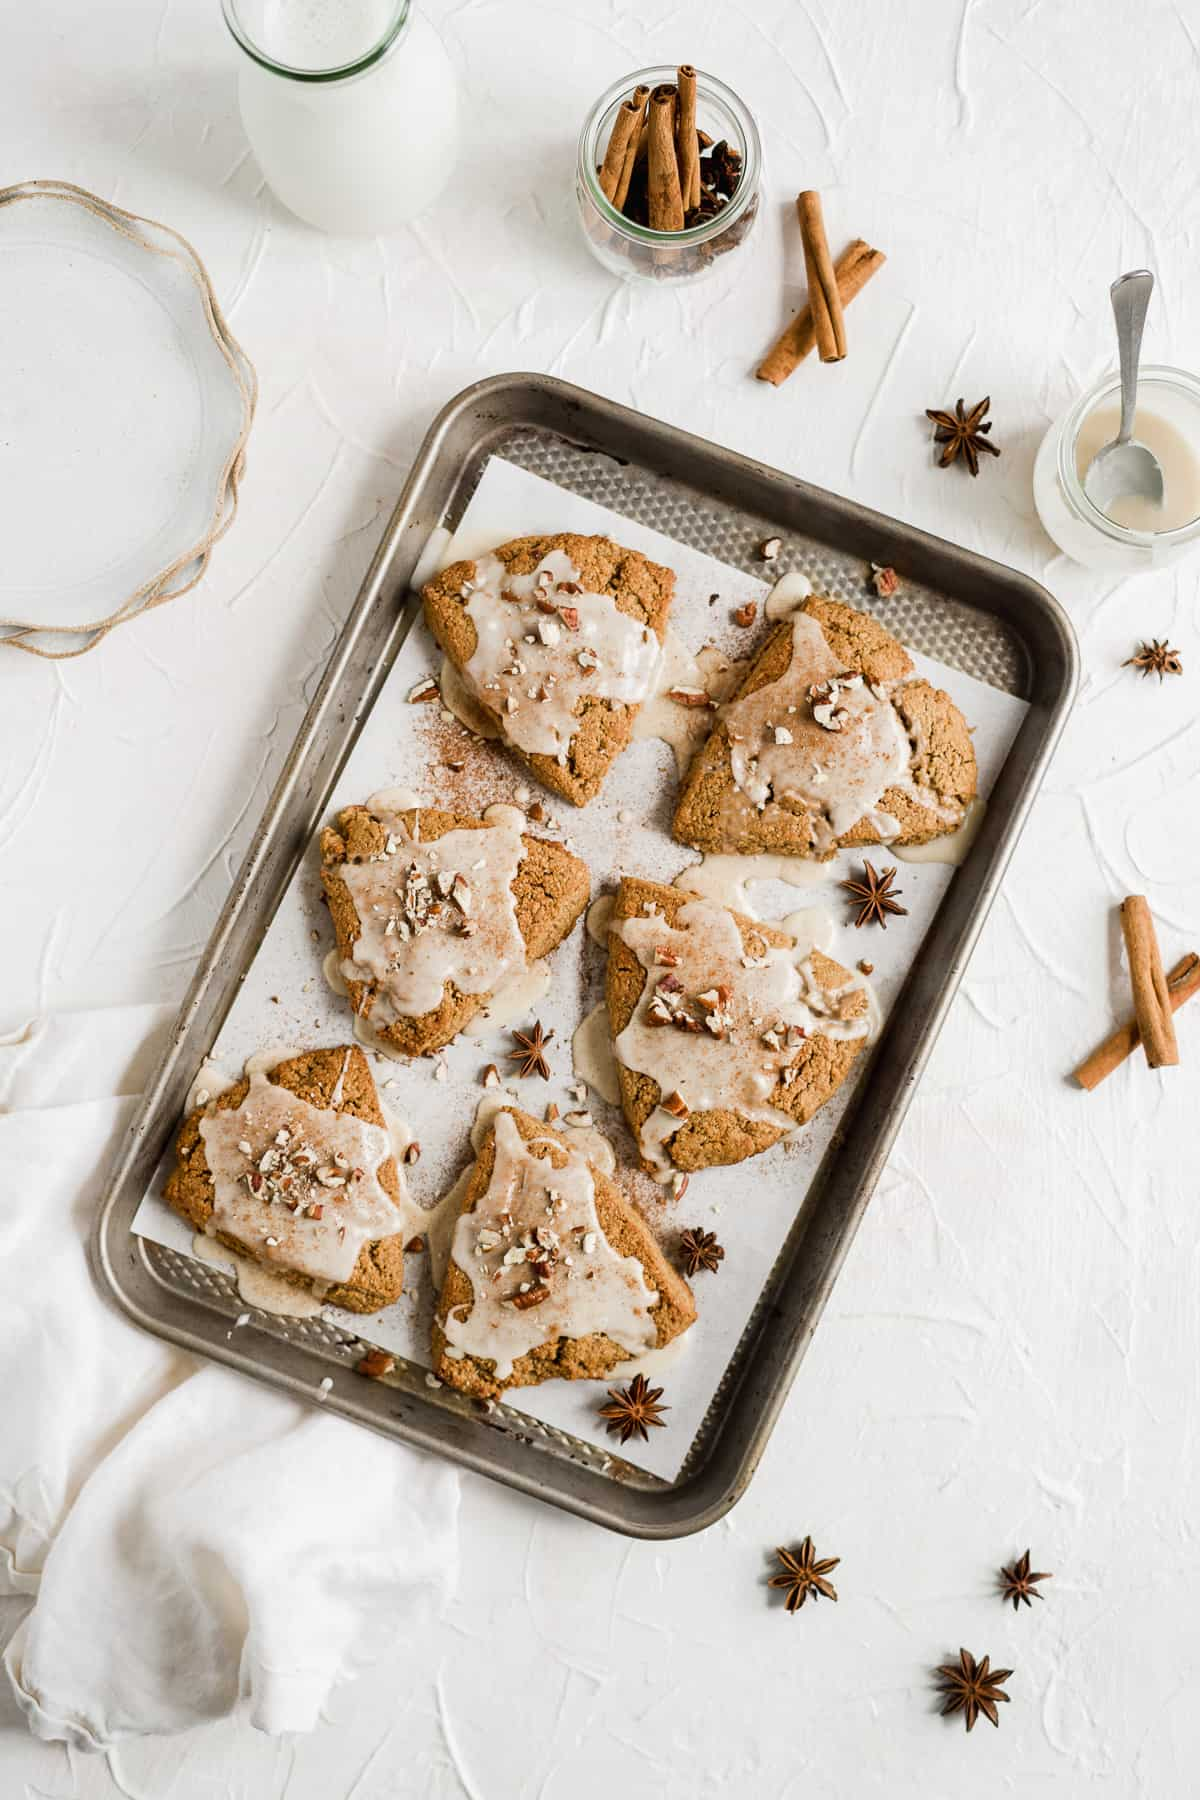 Overhead photo of a baking sheet with parchment paper and six freshly baked and glazed Chai Spiced Gluten-free Vegan Scones.  Some milk, a jar of glaze and several small plates are sitting nearby.